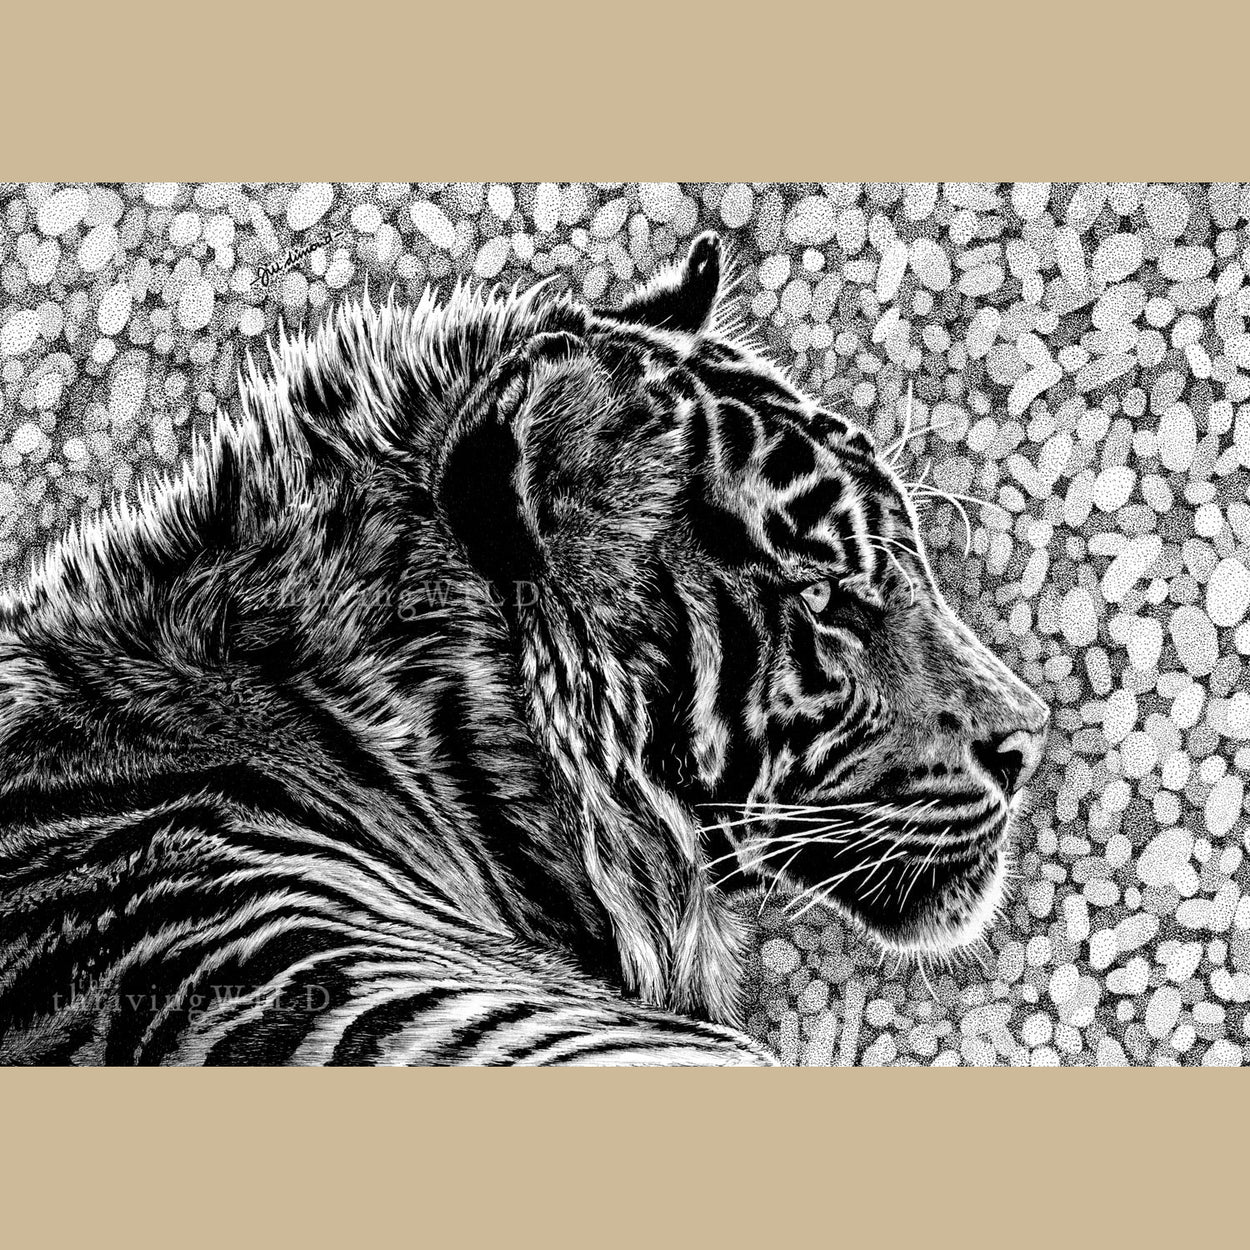 Tiger Pen Drawing - The Thriving Wild